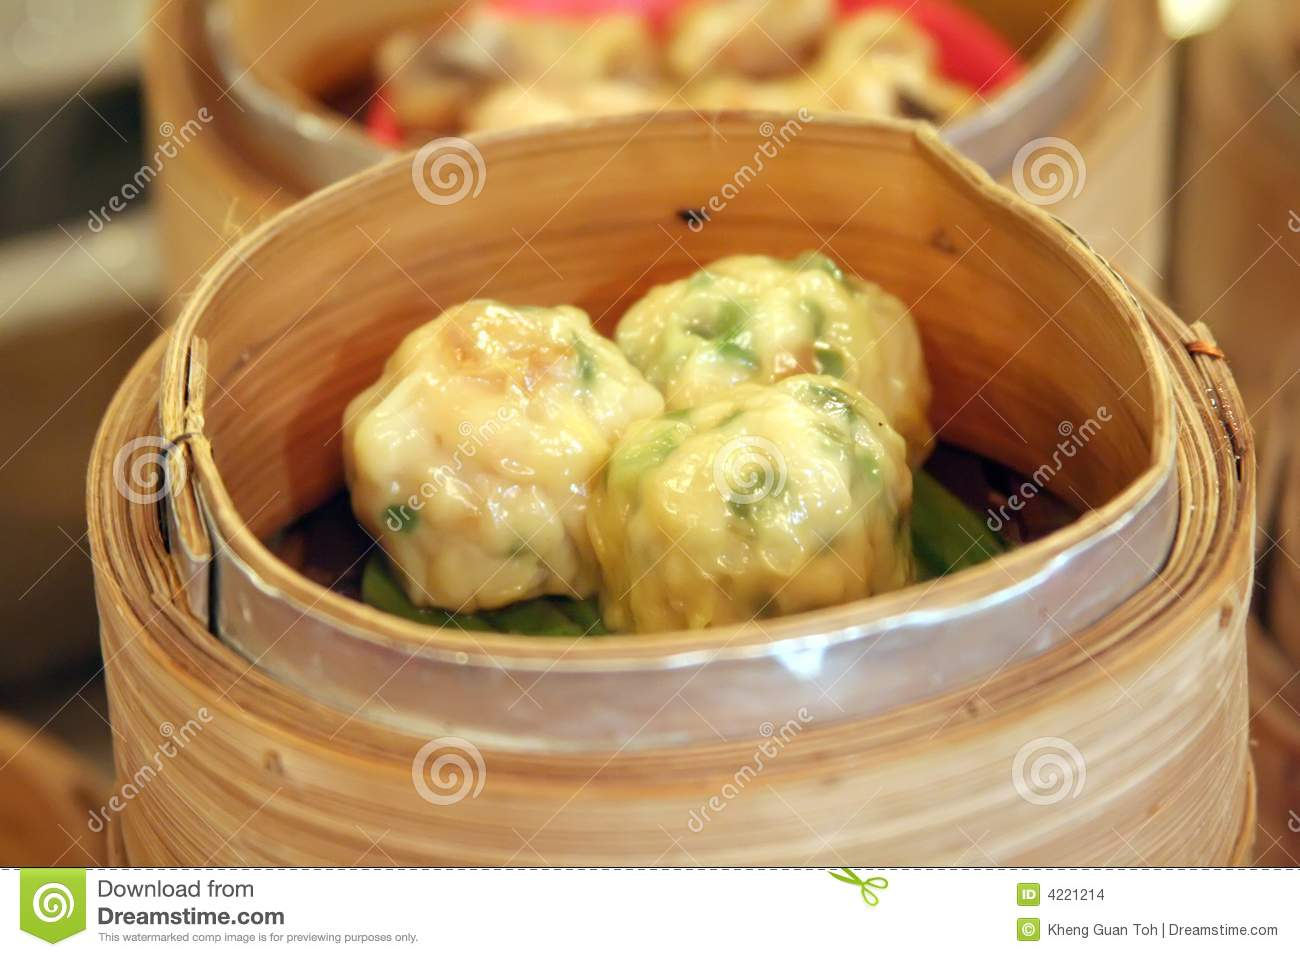 Steamed dumpling dim sum, Traditional chinese cuisine.